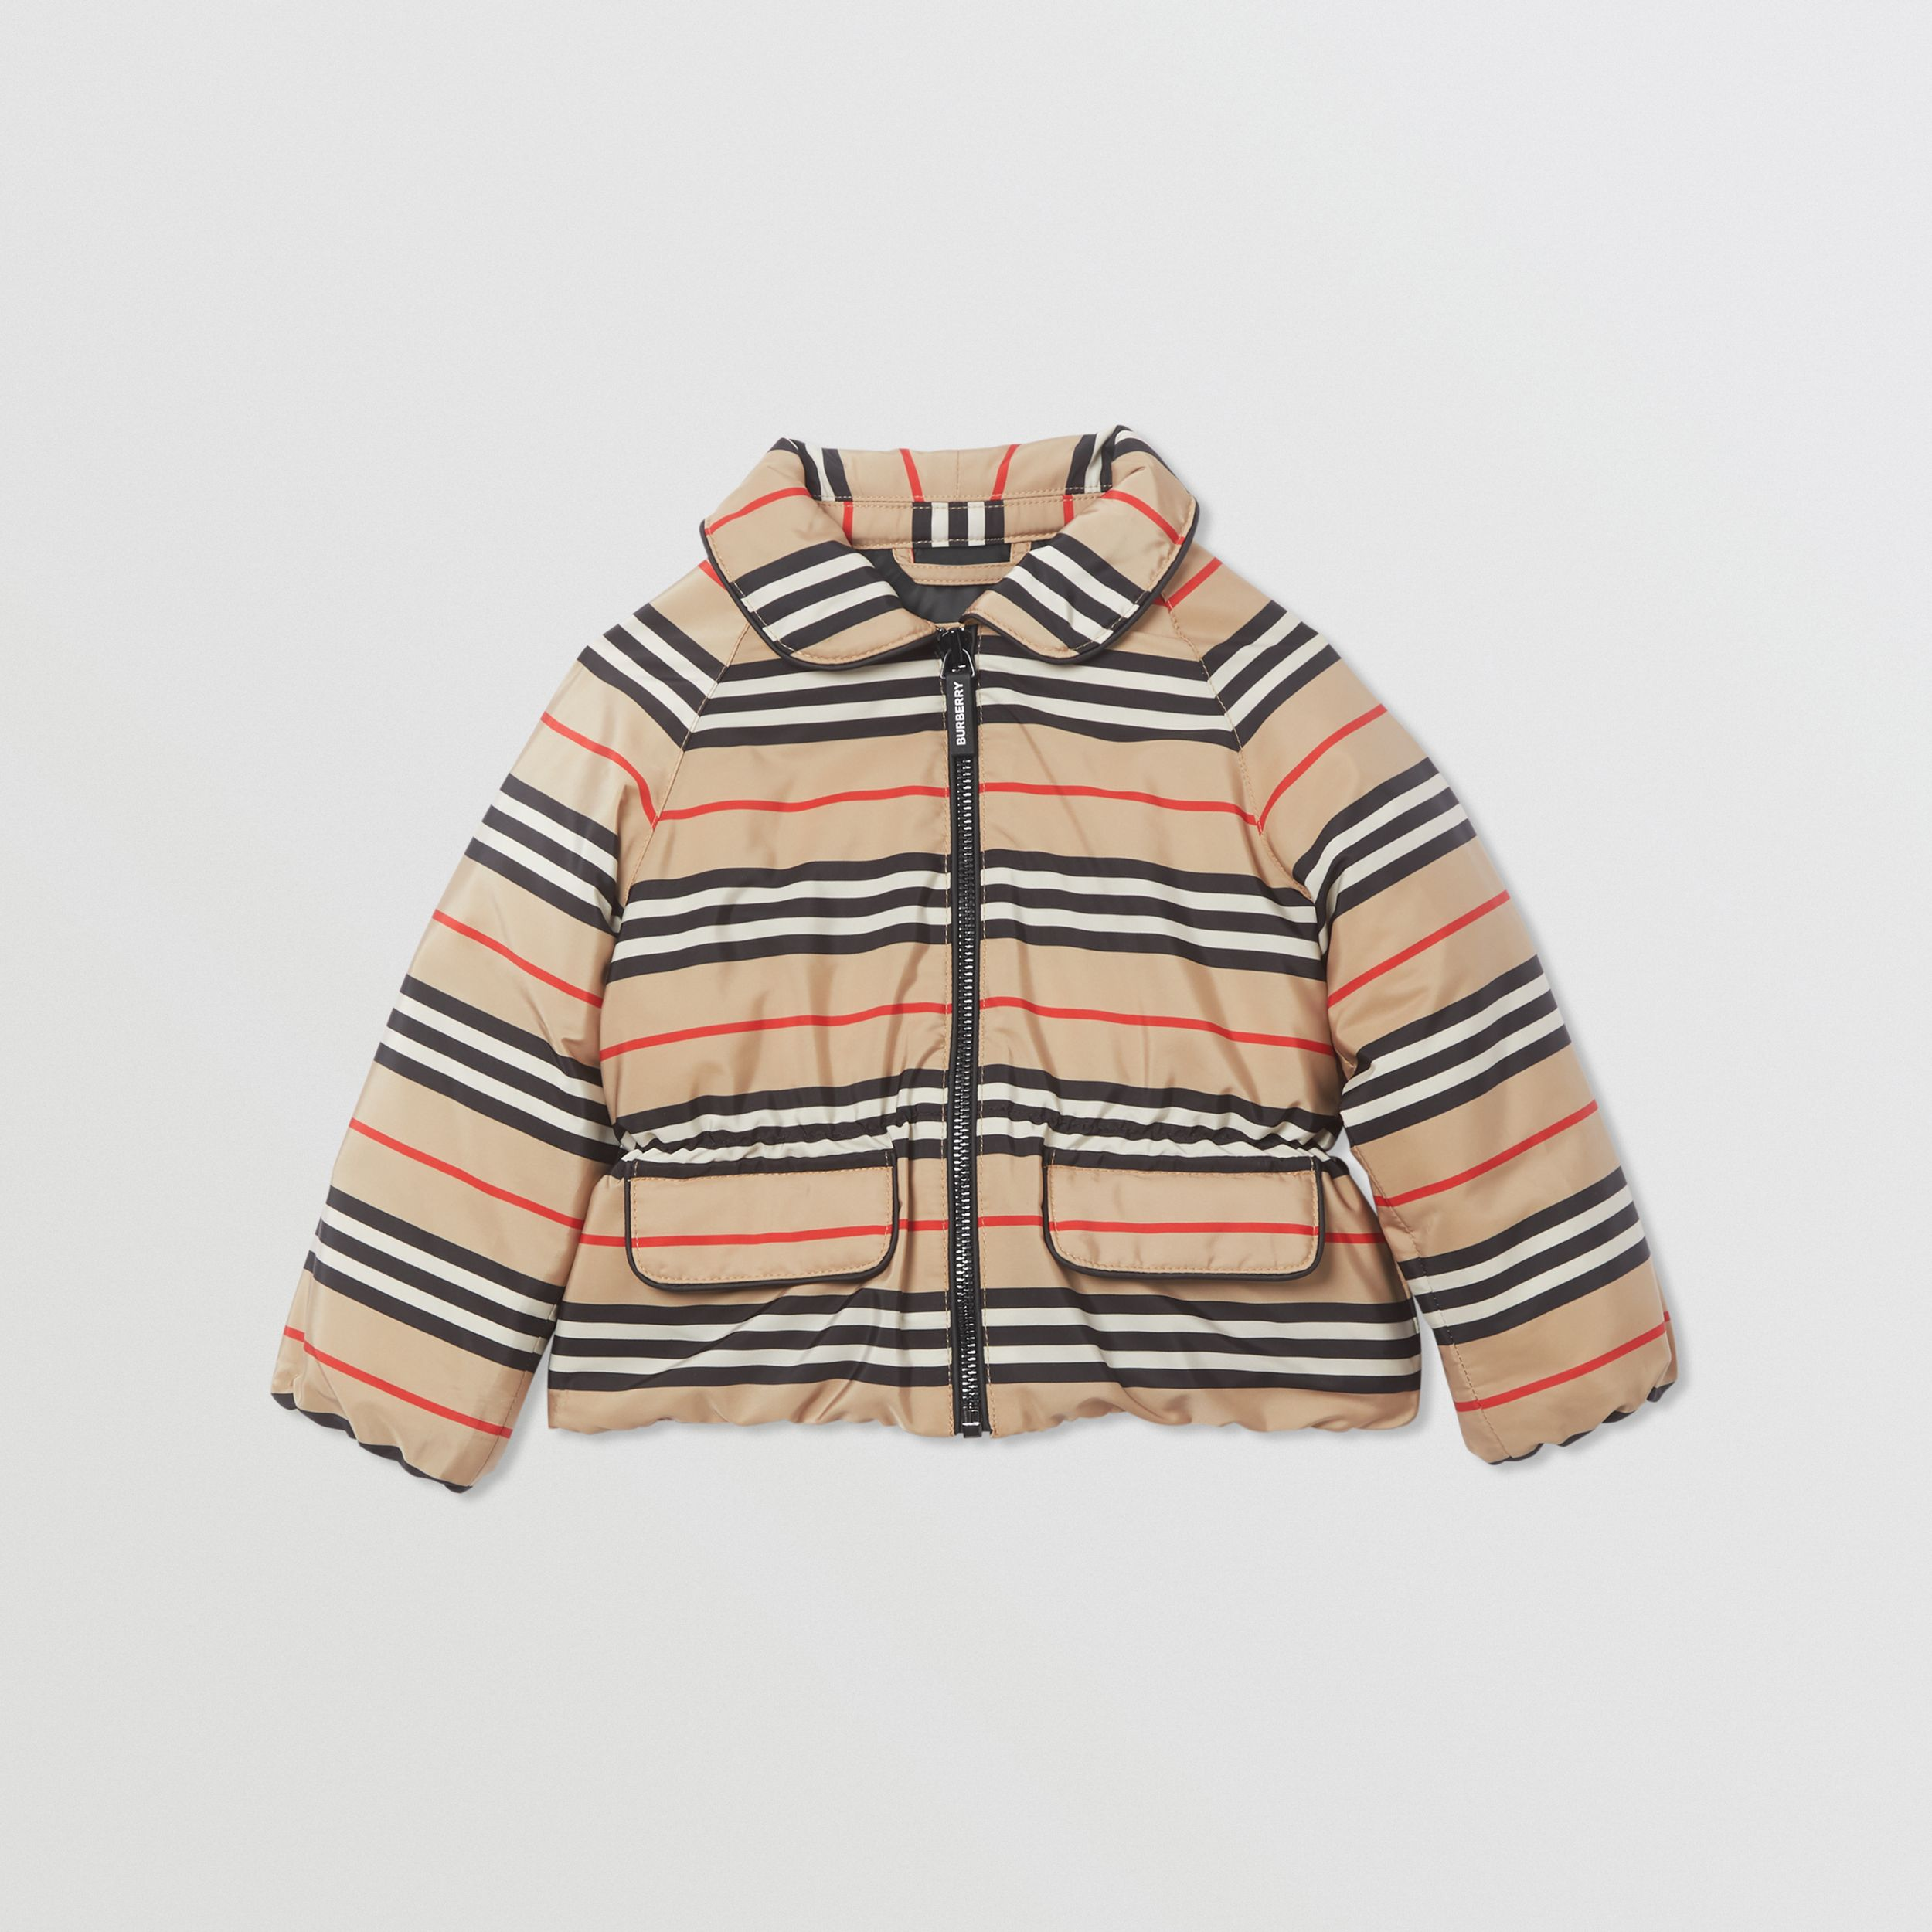 Icon Stripe Down-filled Jacket in Archive Beige - Children | Burberry - 1